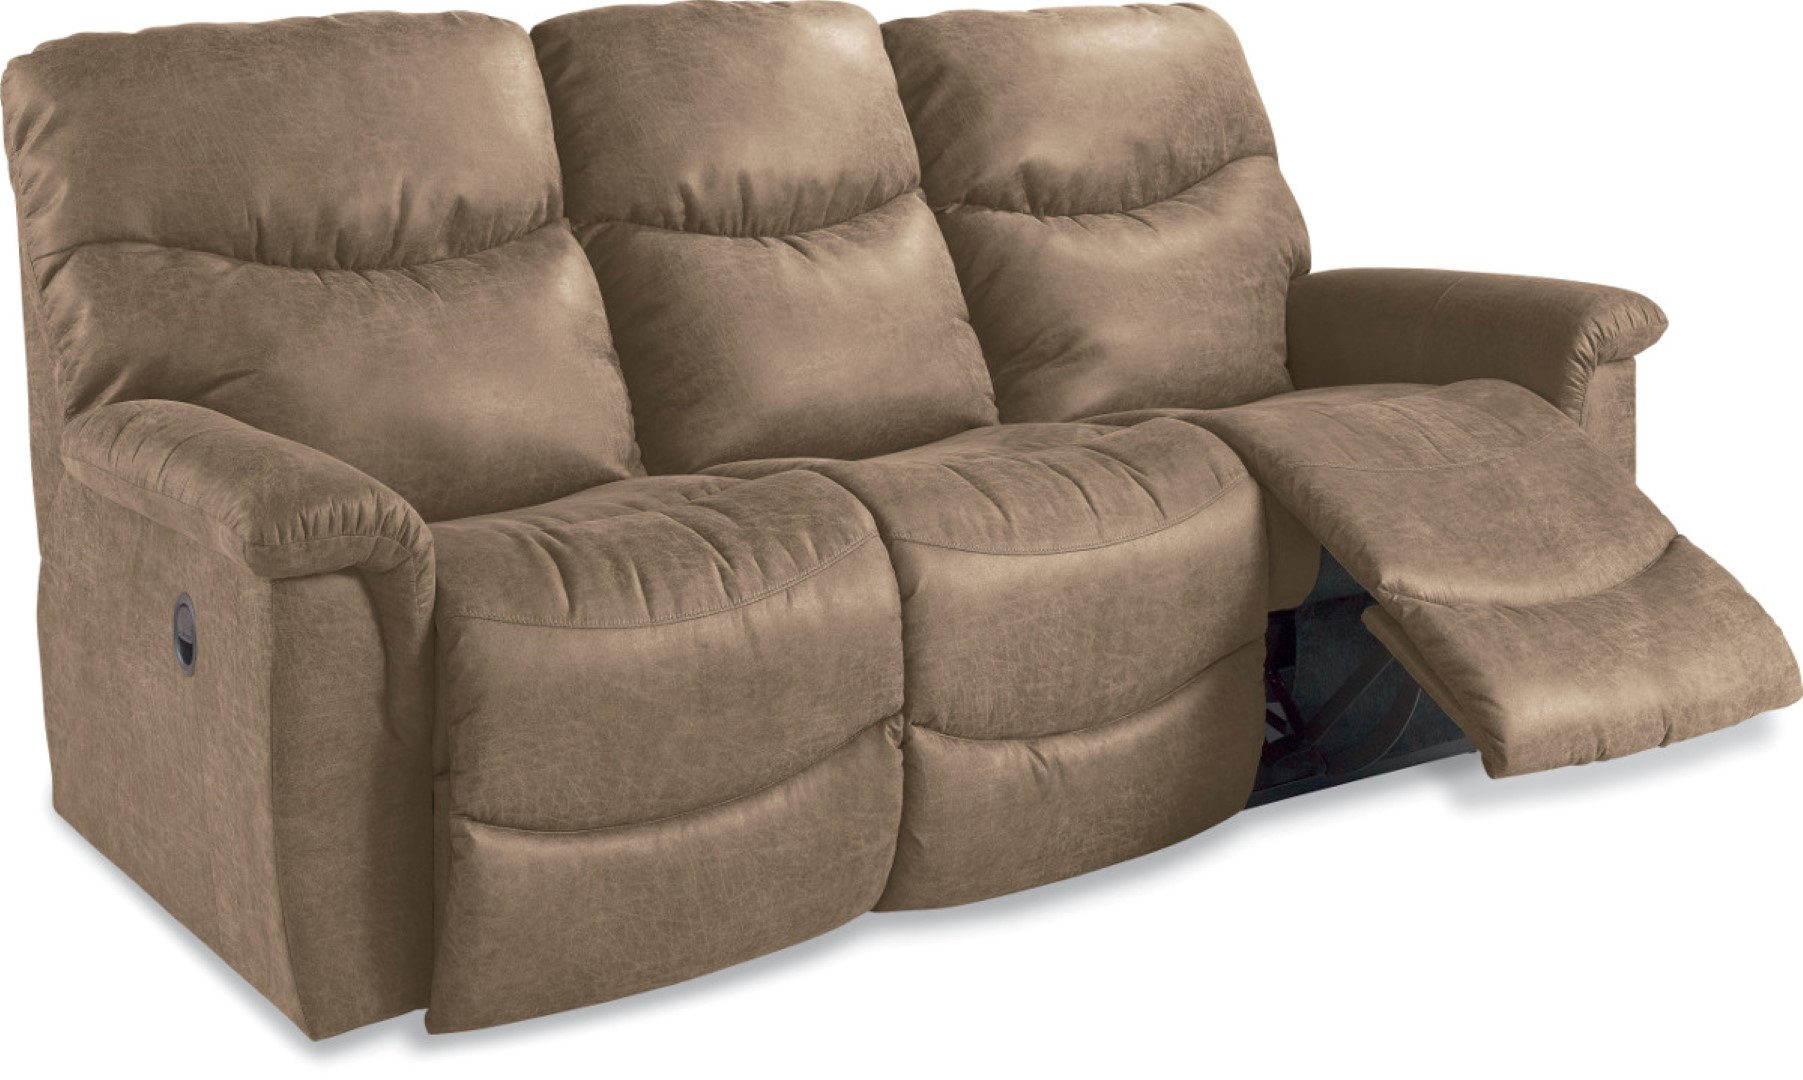 reclining seats saver cupholder z love reclina loveseat console way wall storage by midd with furniture full recliner boy and w products lazy